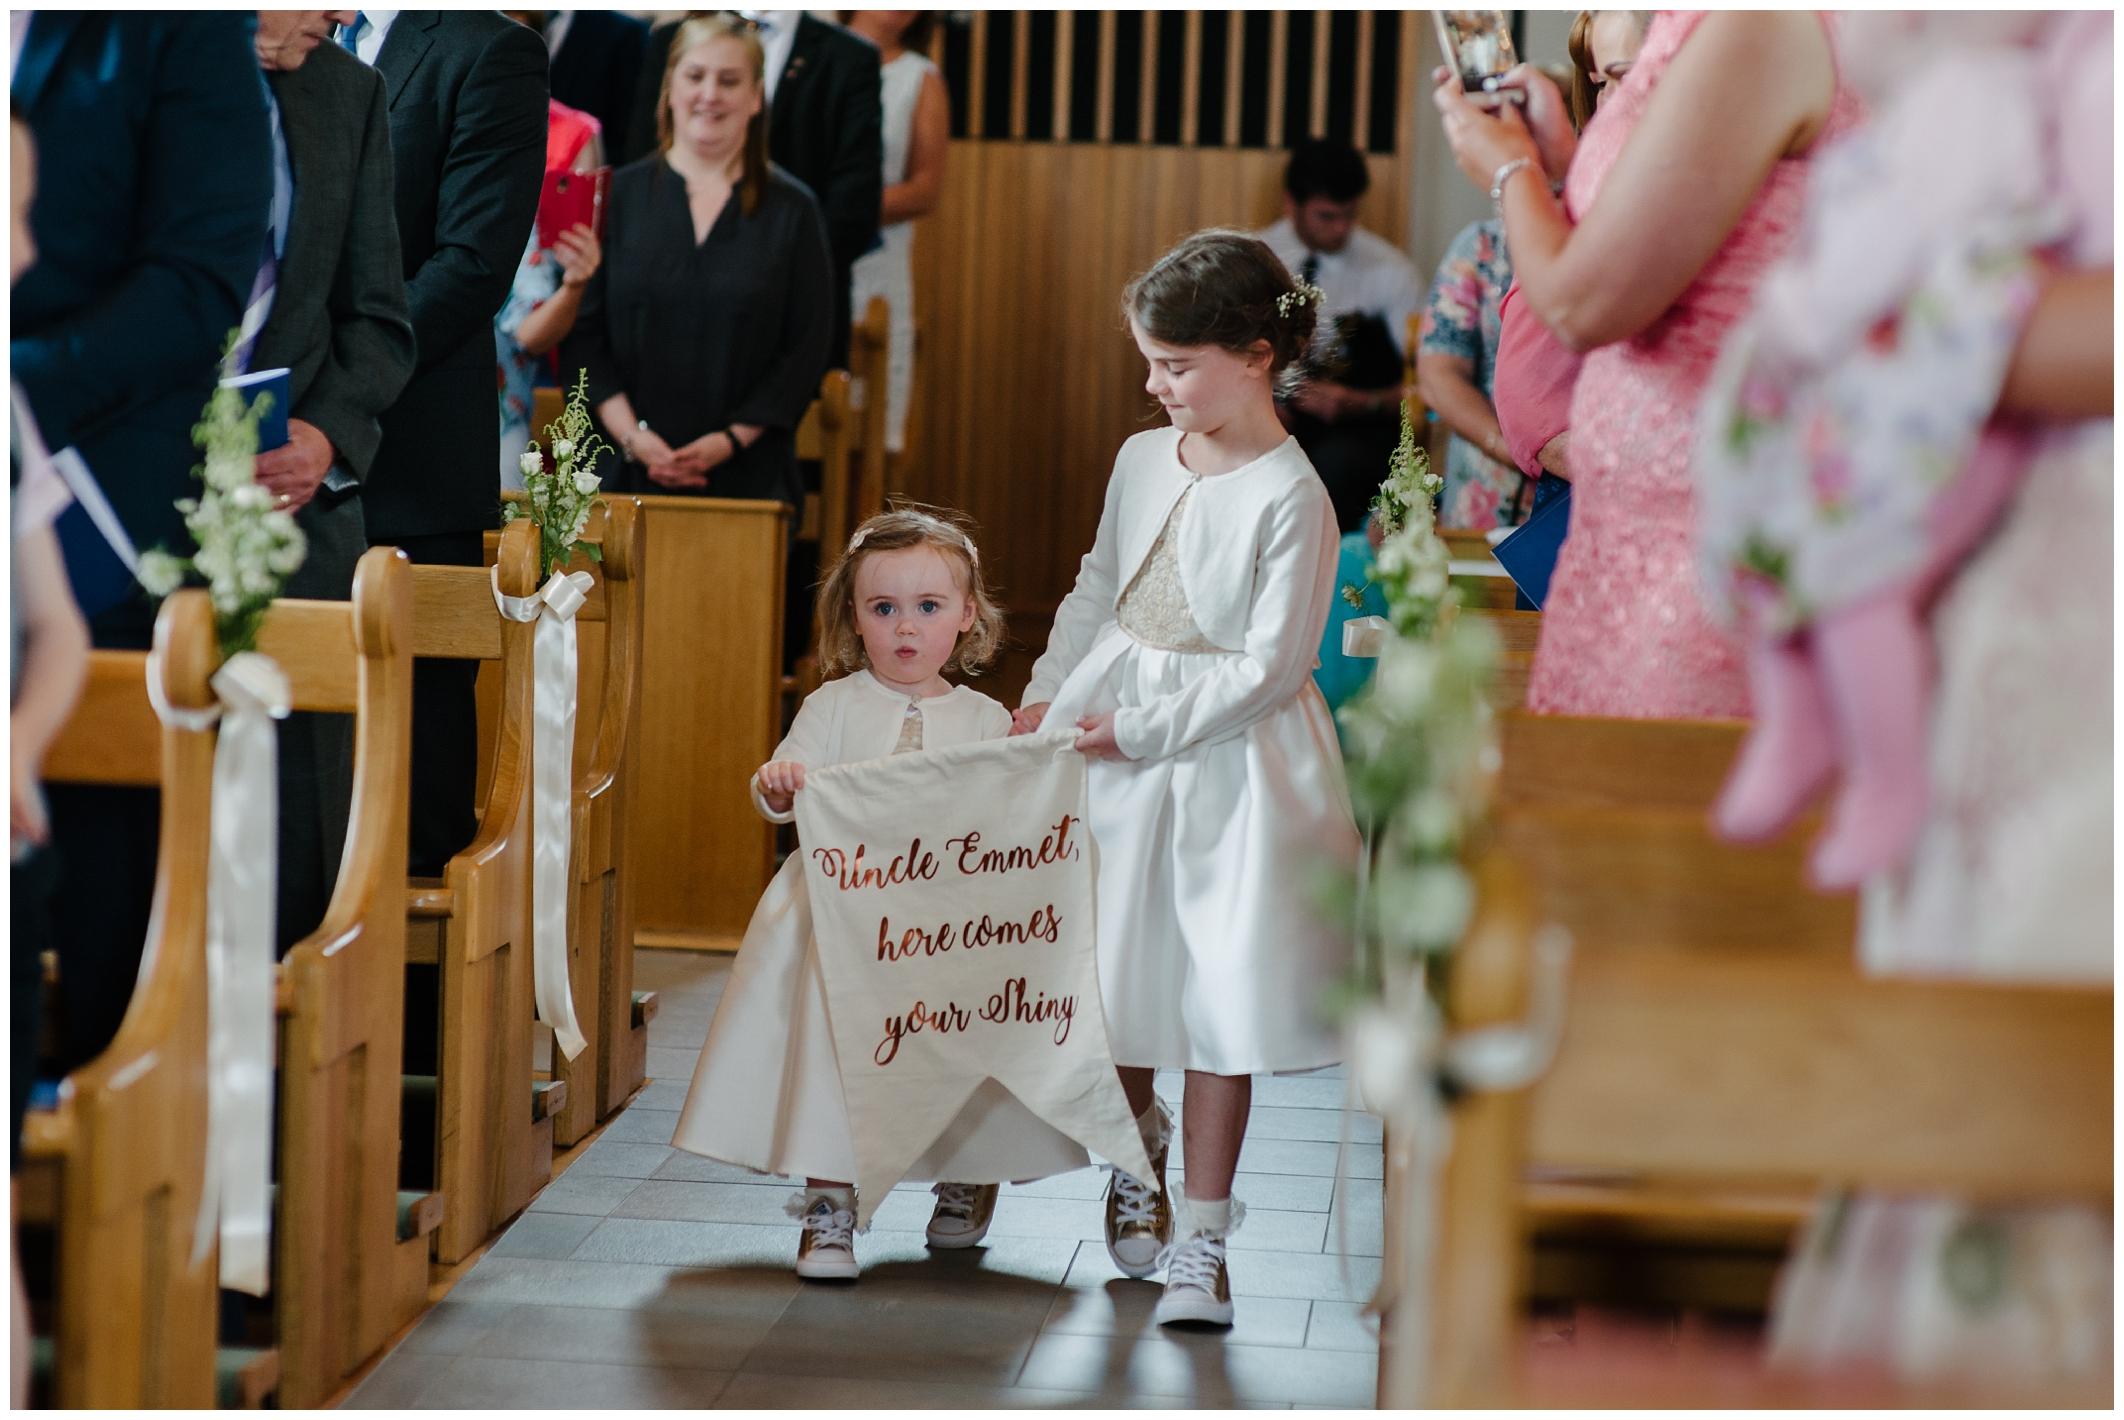 sinead_emmet_farnham_estate_wedding_jude_browne_photography_0055.jpg